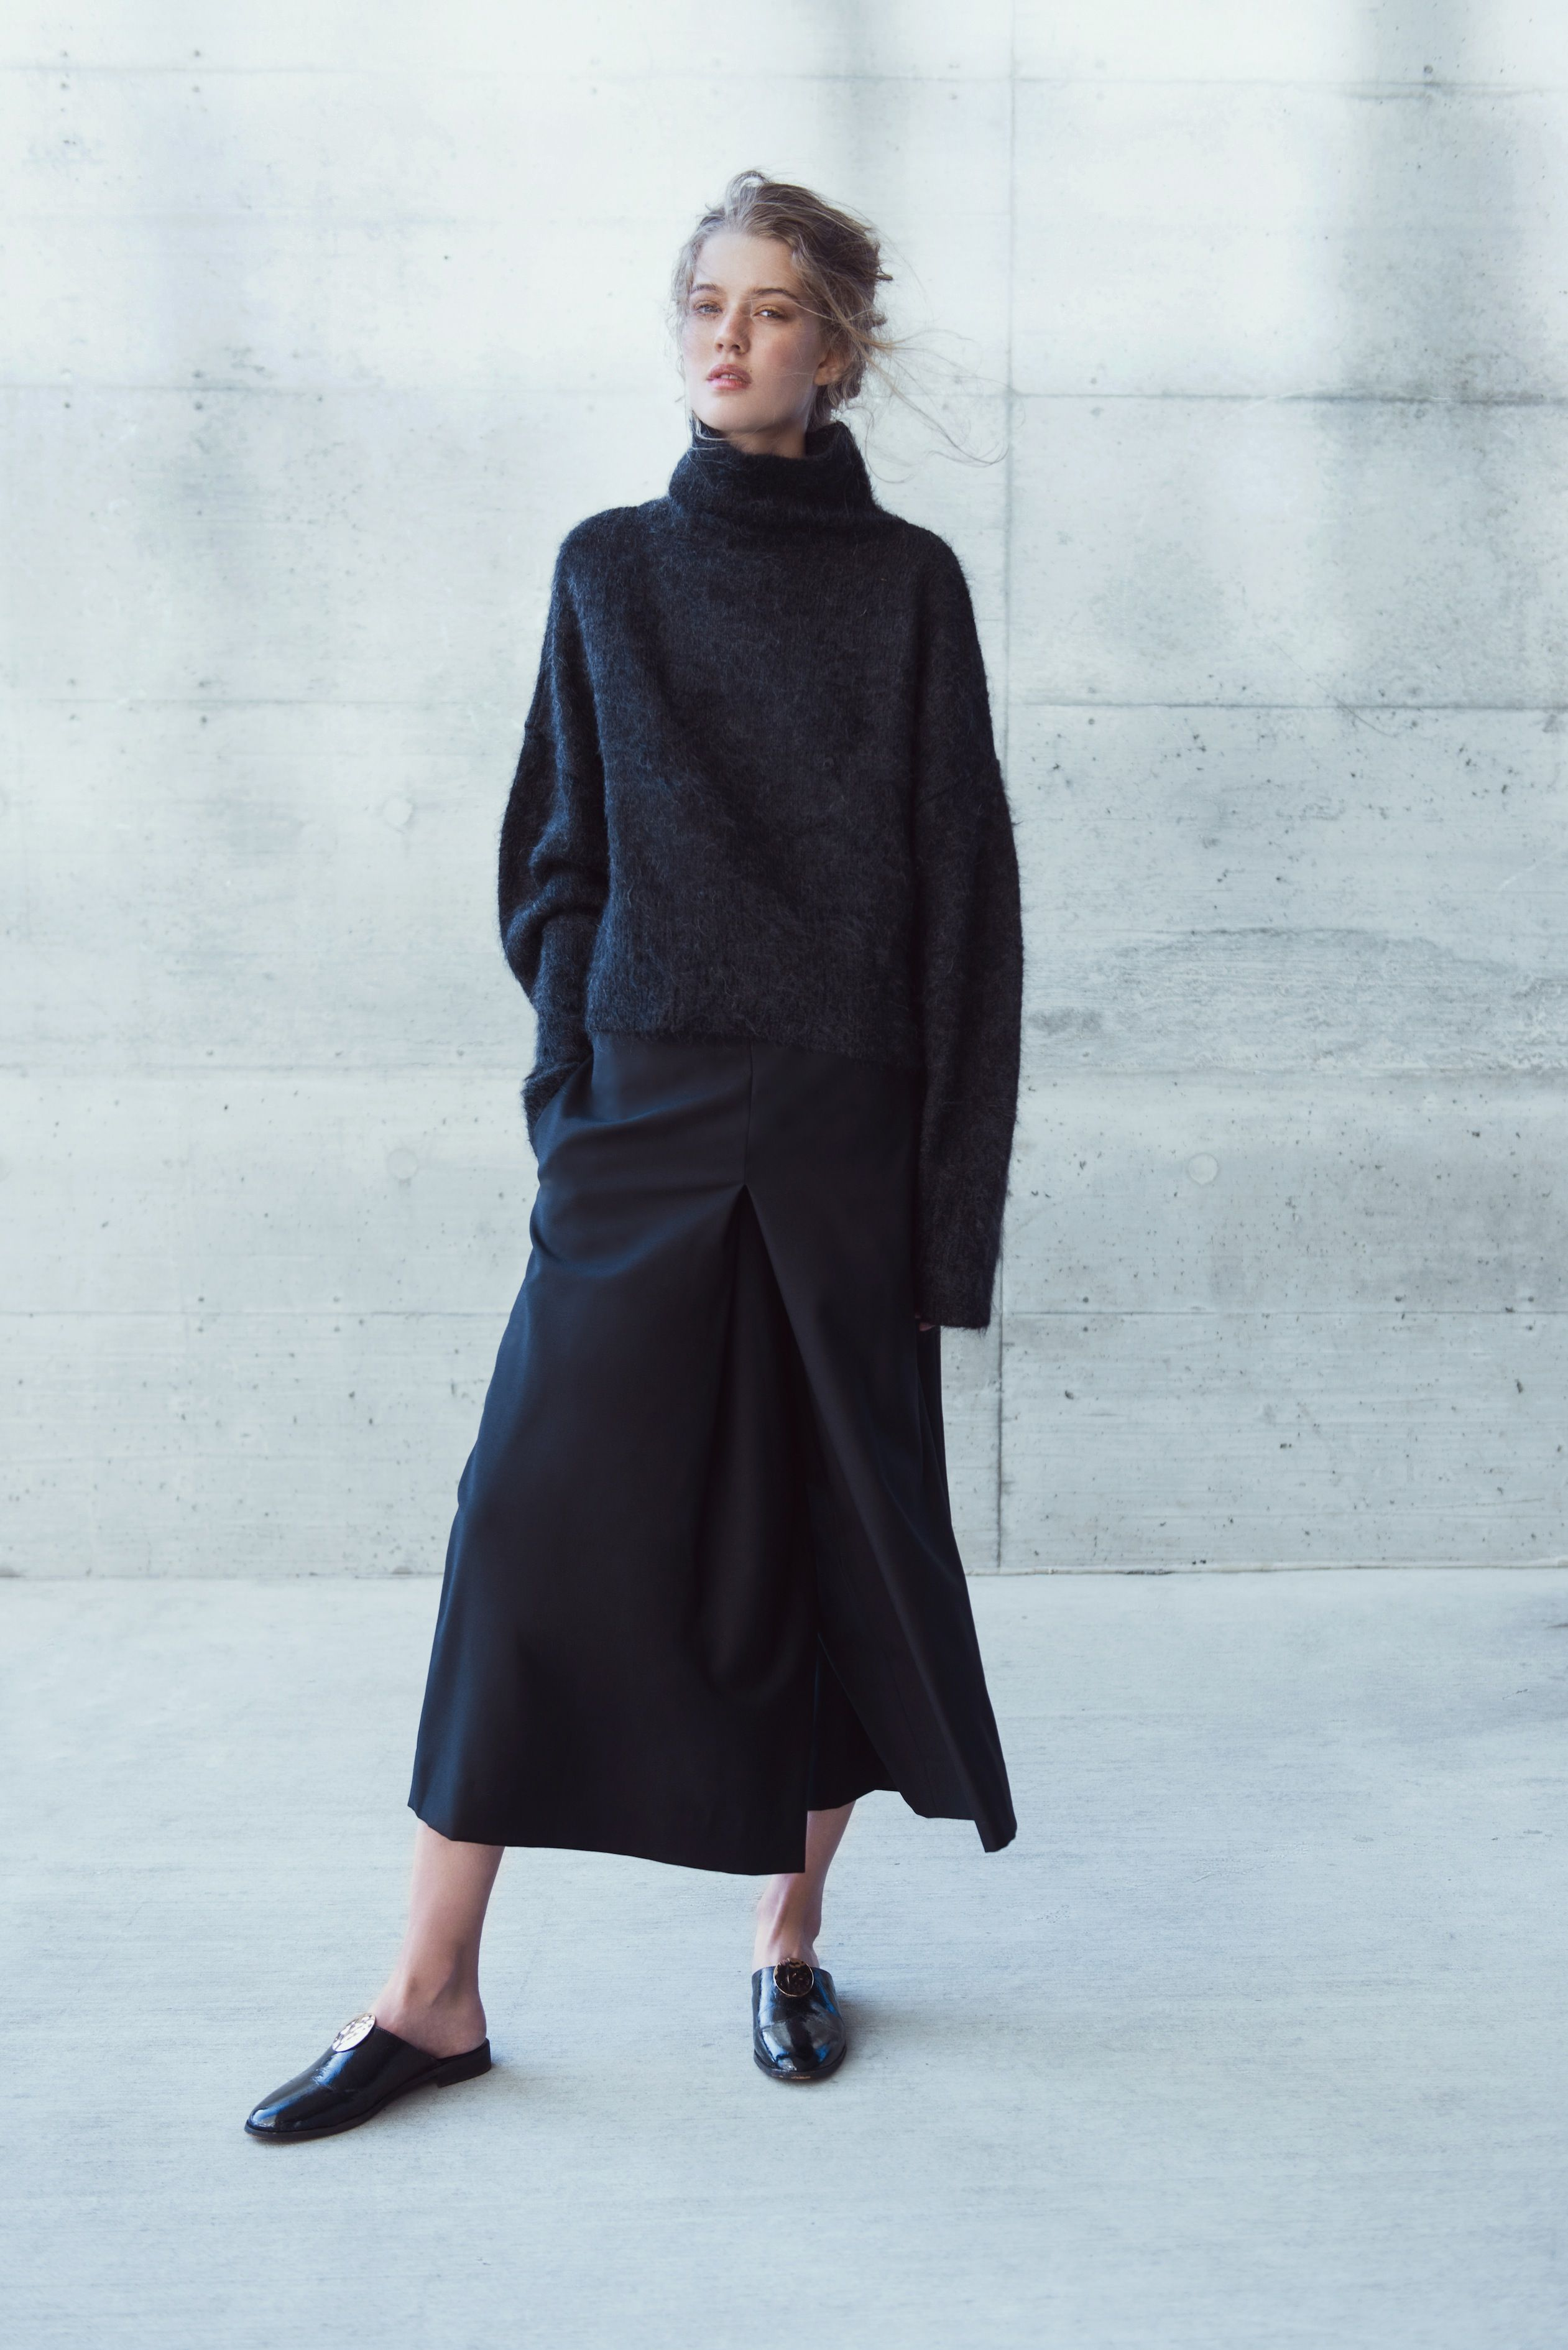 MINIMAL + CLASSIC @nordhaven: coltrane - my favourite things collection AW16. ethical design made in switzerland. www.coltraneworks.com